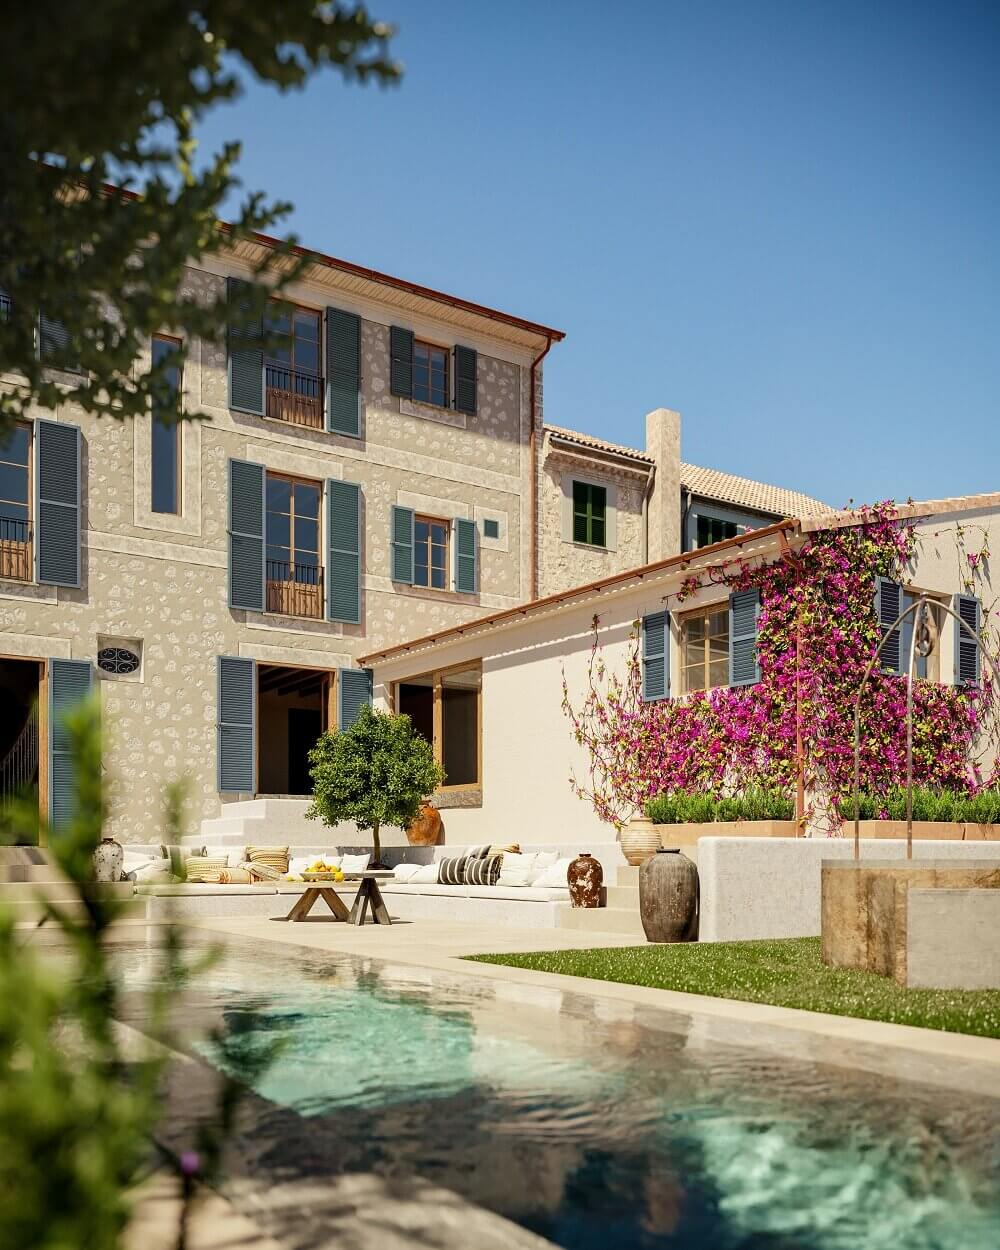 A Luxurious Townhouse With An Orchard Garden on Mallorca